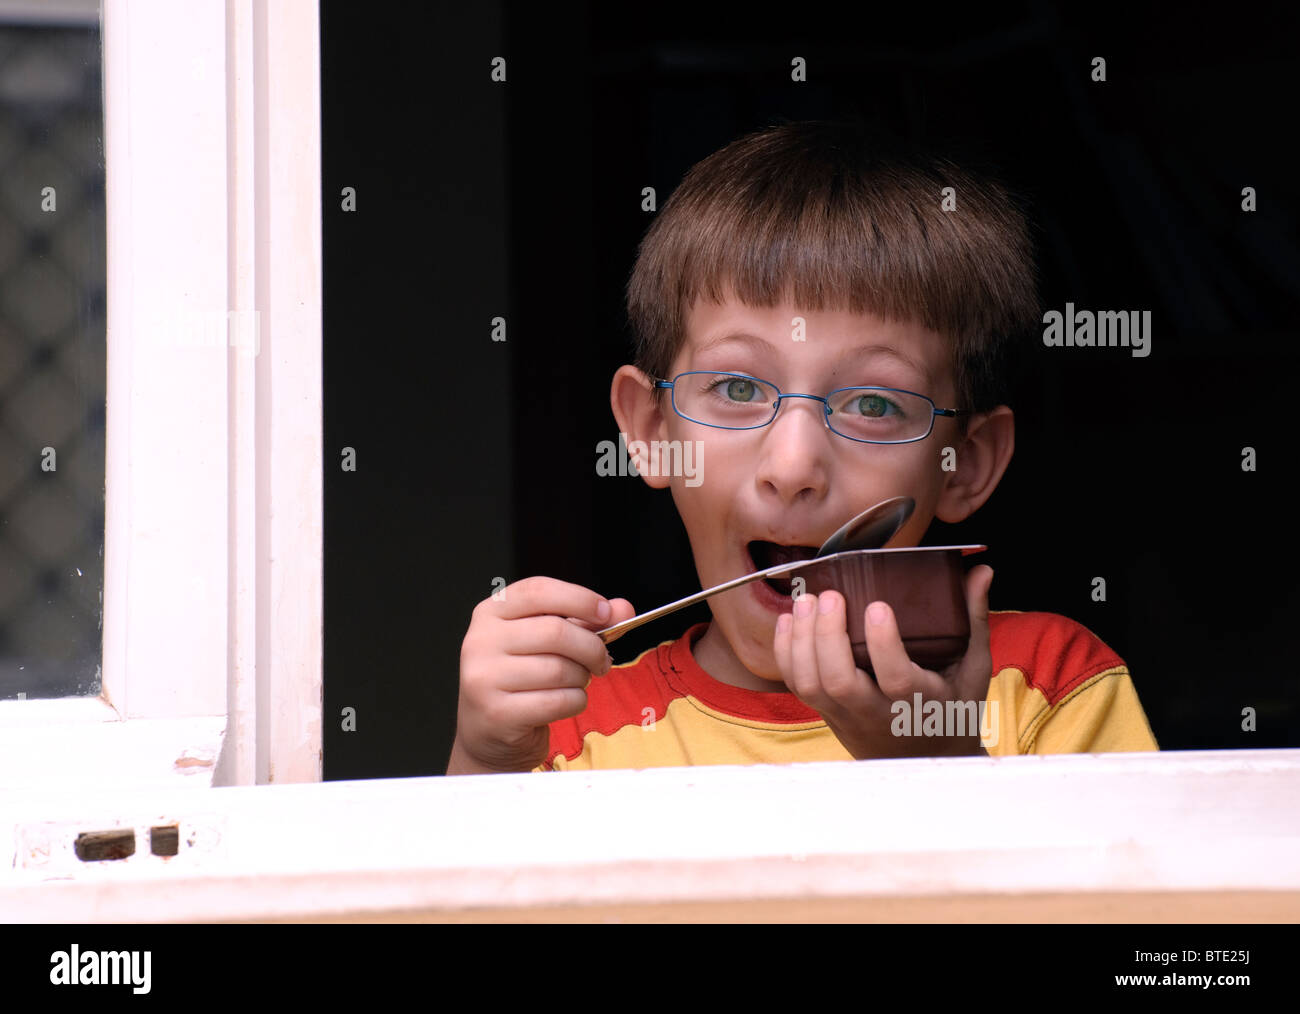 young-greek-boy-making-a-funny-face-as-he-is-eating-some-chocolate-BTE25J.jpg